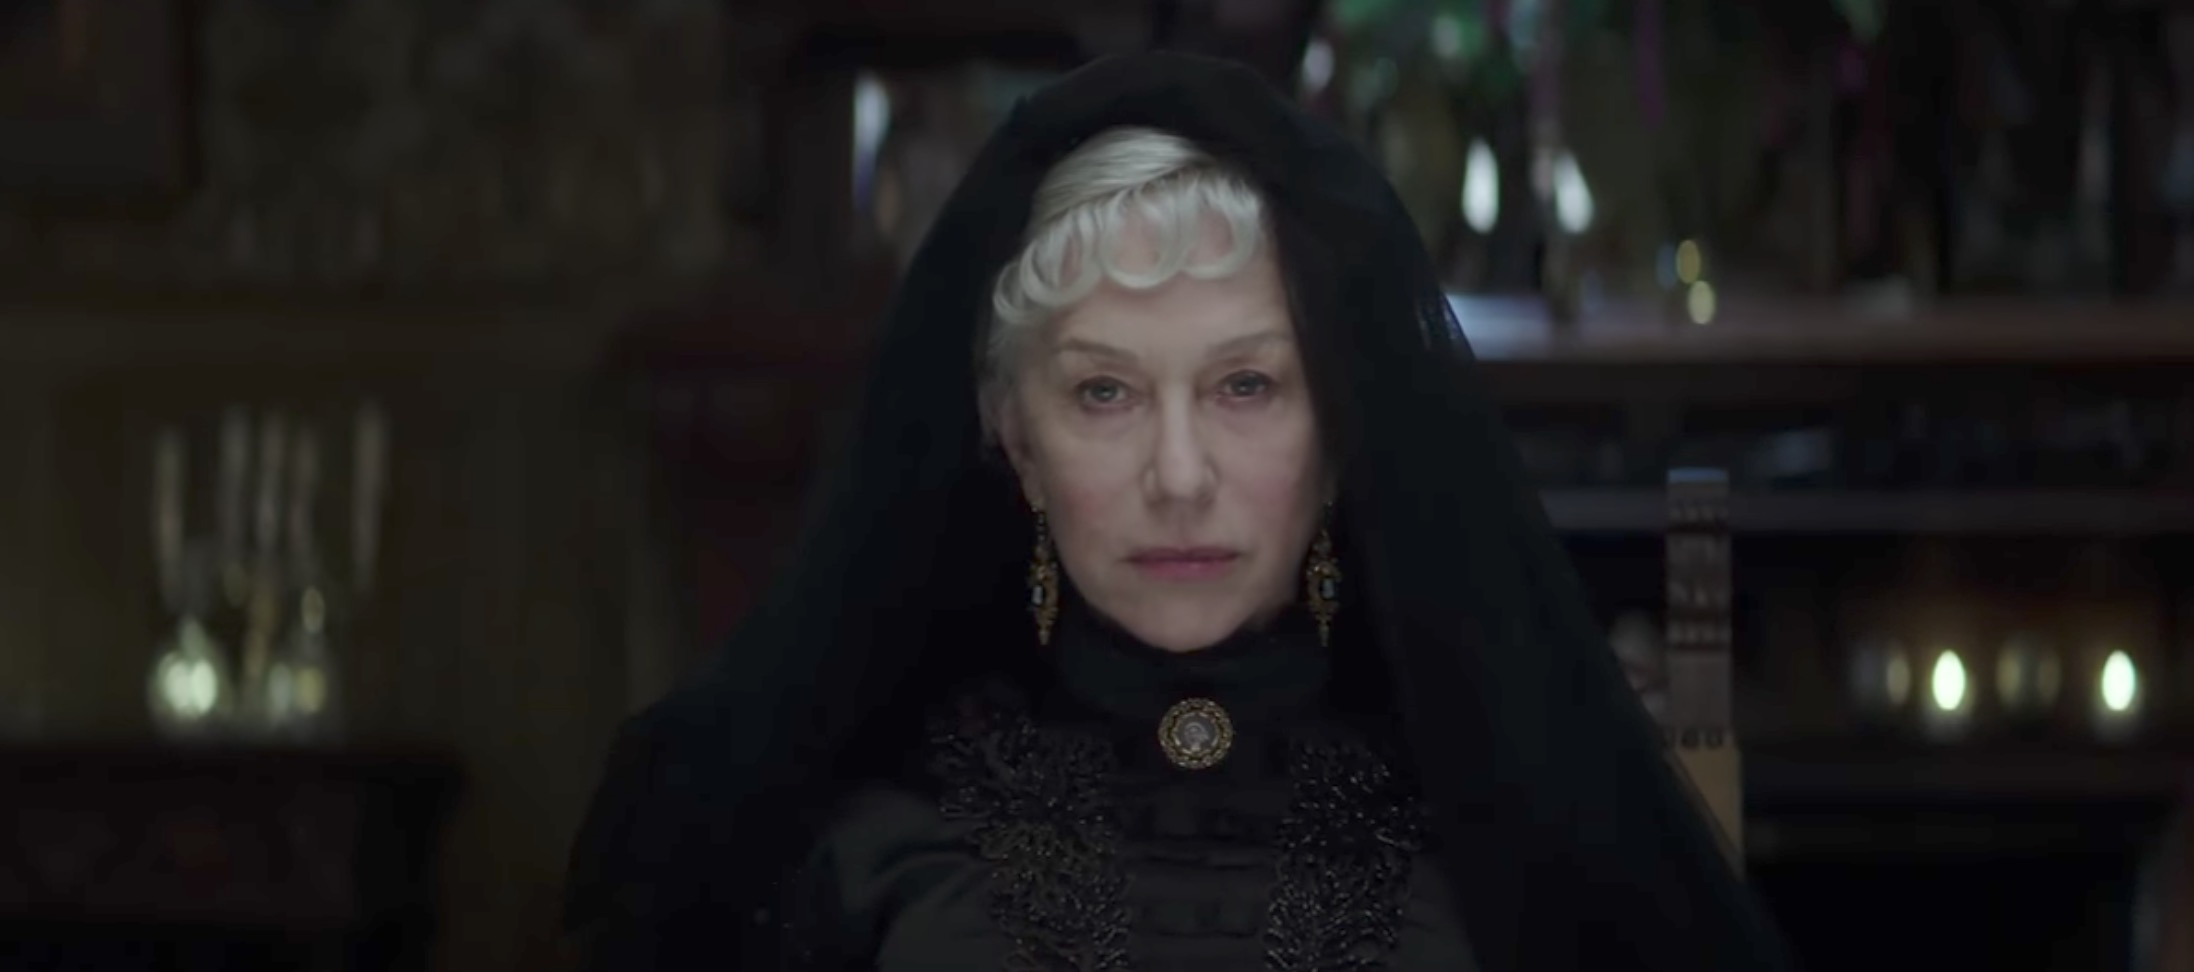 Helen Mirren stars in new horror movie Winchester: The House That Ghosts Built (YouTube, JG)